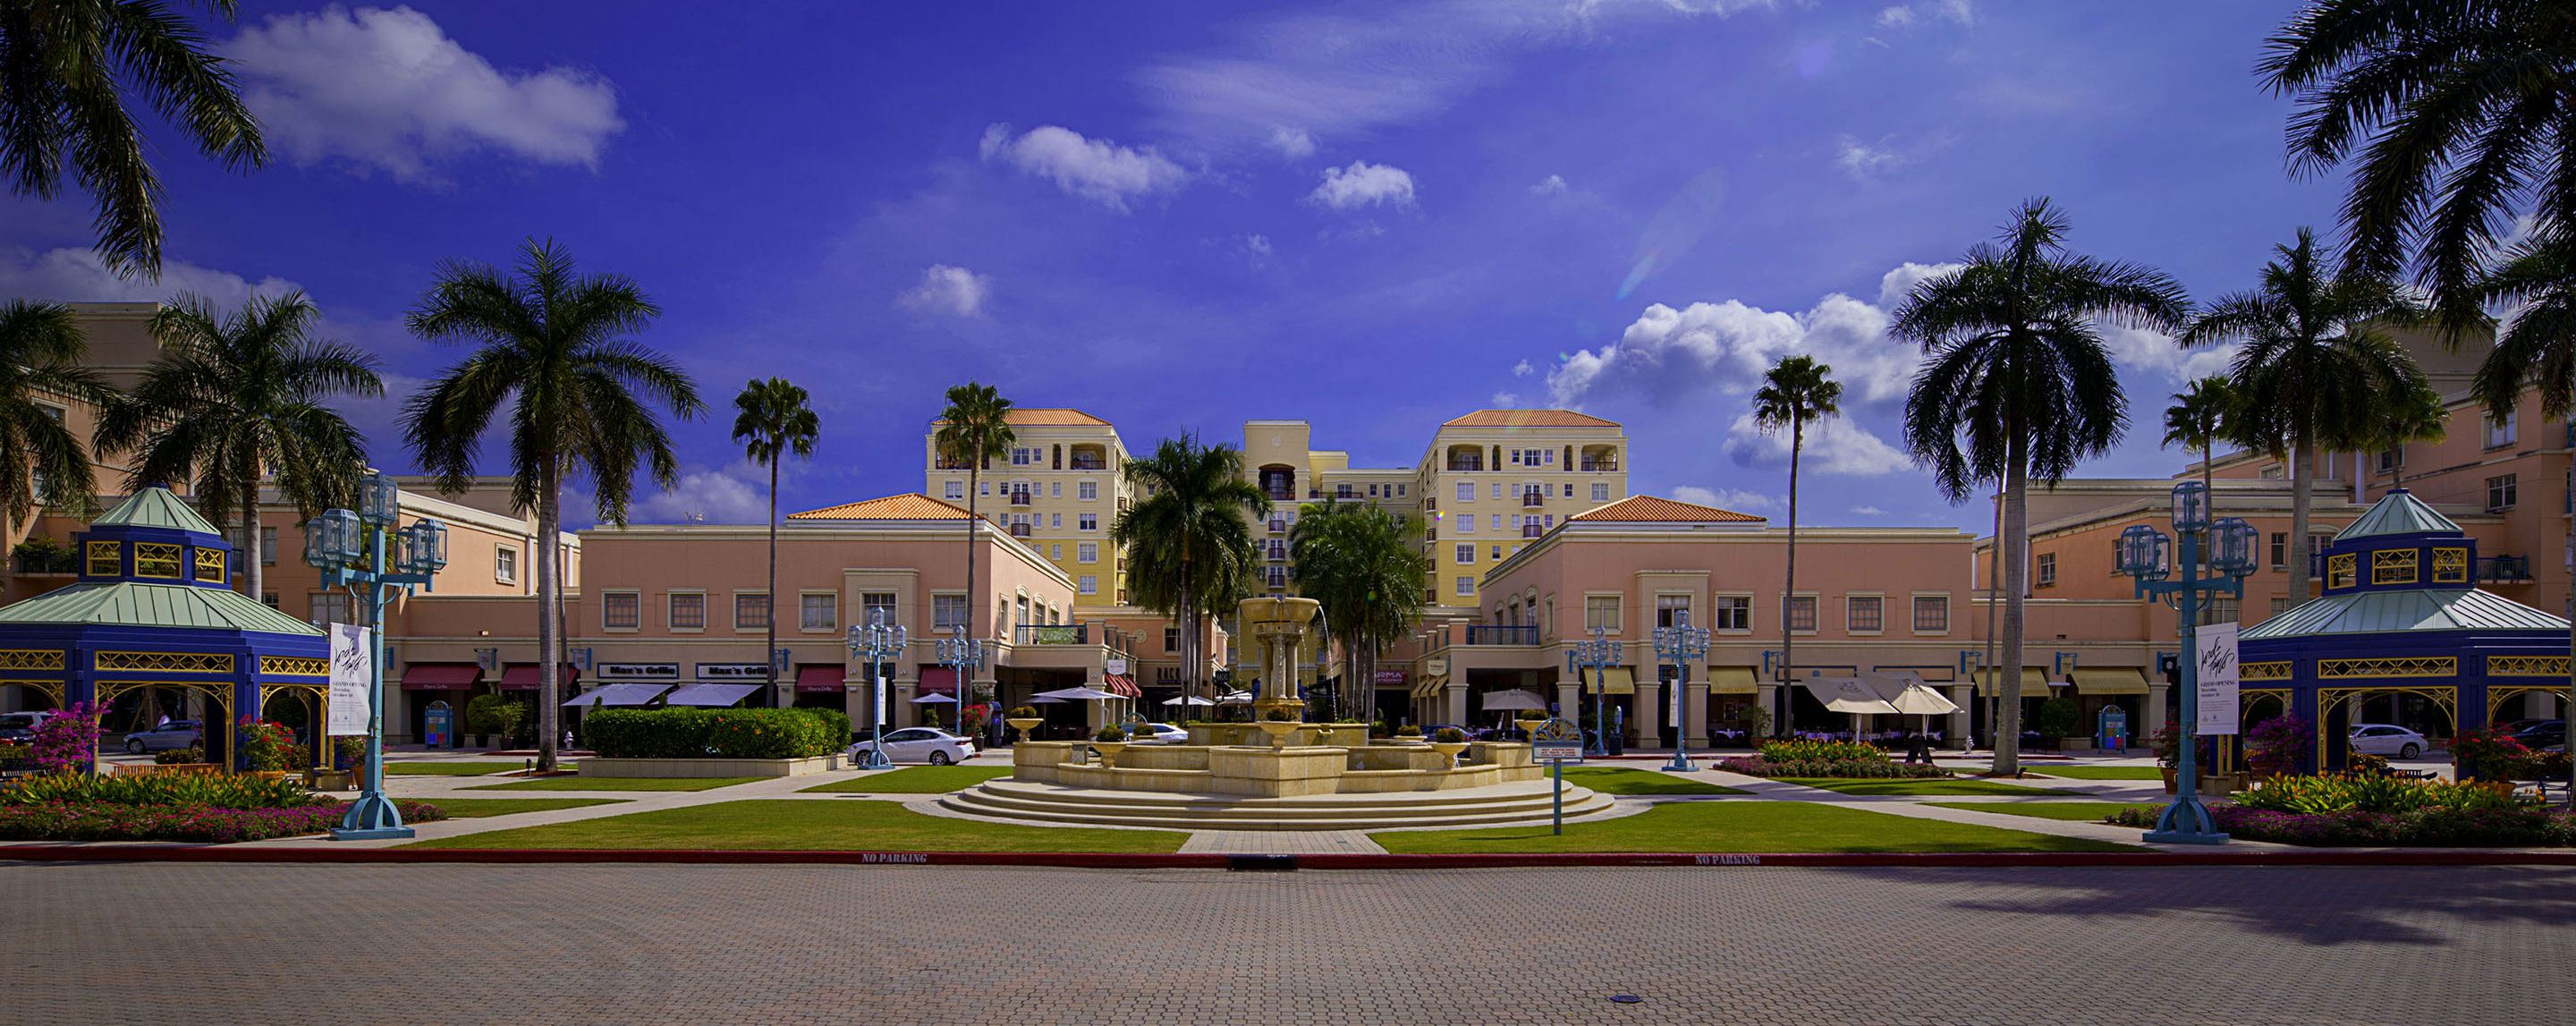 Green grass and palm trees decorate the lawn of a modern shopping center or strip mall.